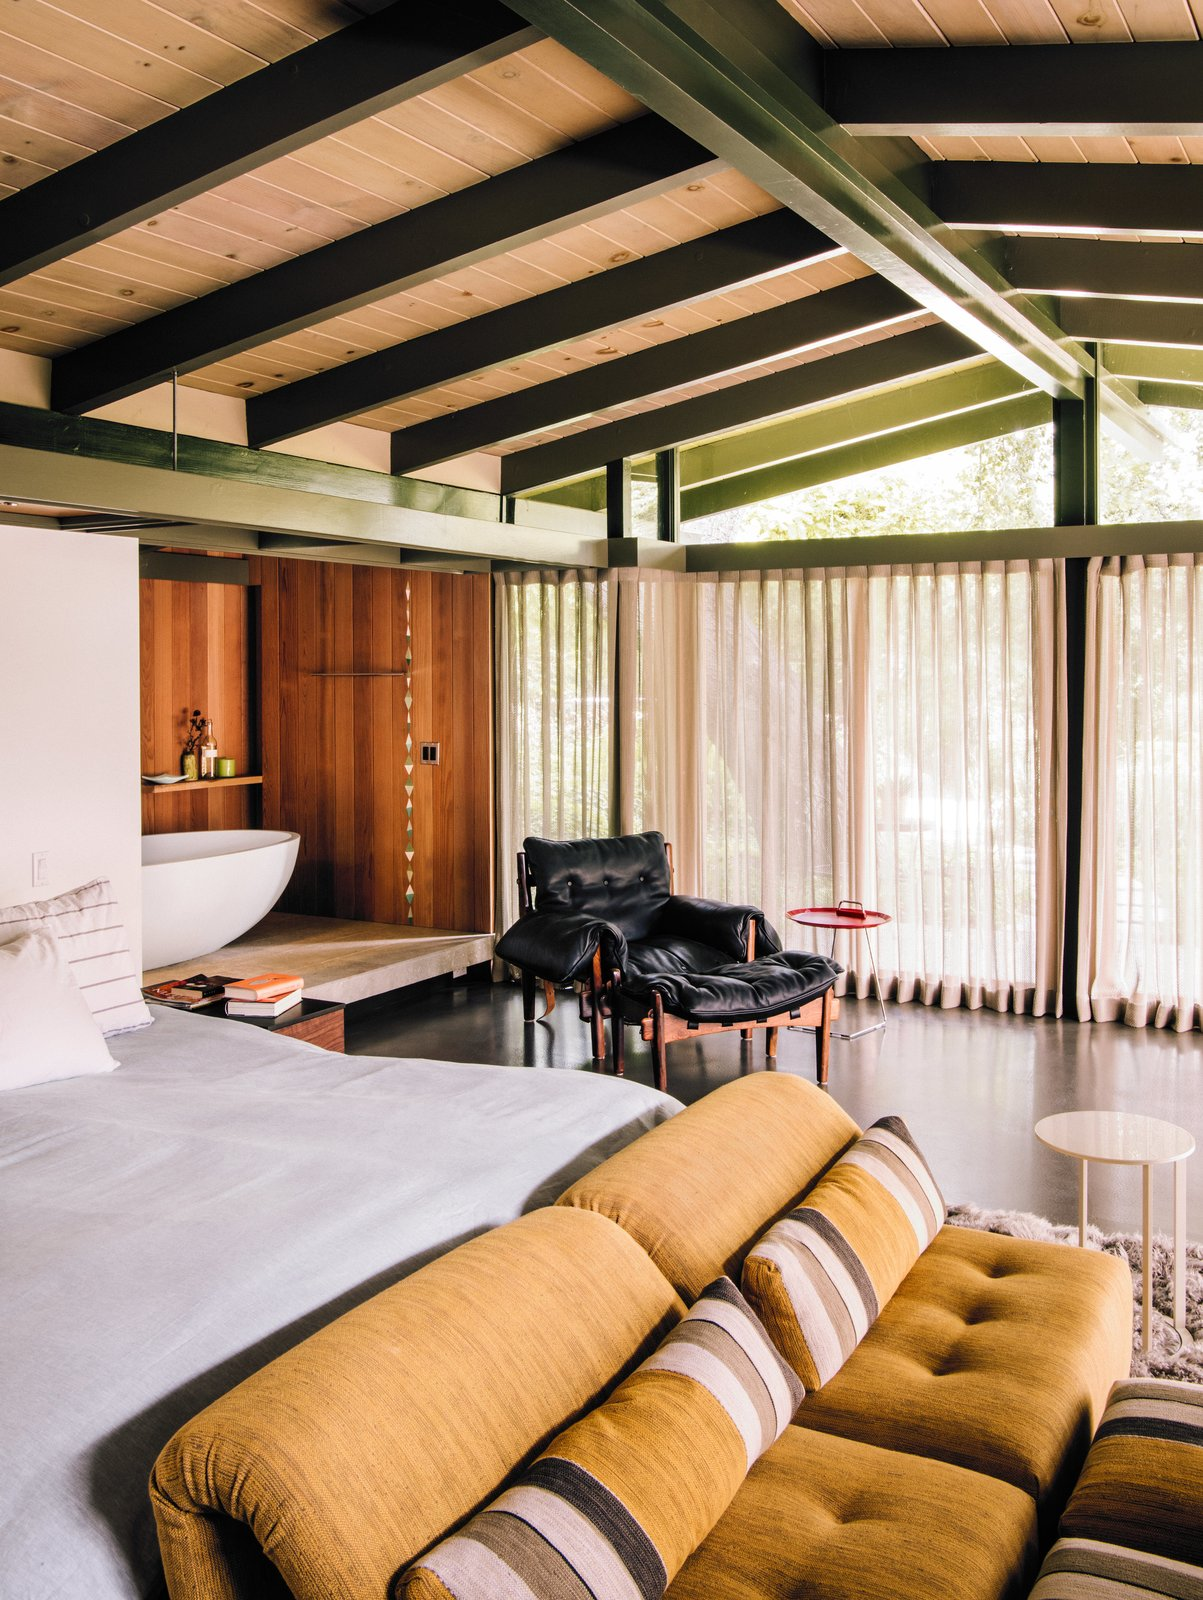 A tub zone lined in redwood connects to the master bedroom, which is furnished with a vintage Sergio Rodrigues lounge chair and Voyage Immobile seats from Roche Bobois.  47+ Midcentury Modern Homes Across America by Luke Hopping from Creative Revival of a Modernist Gem